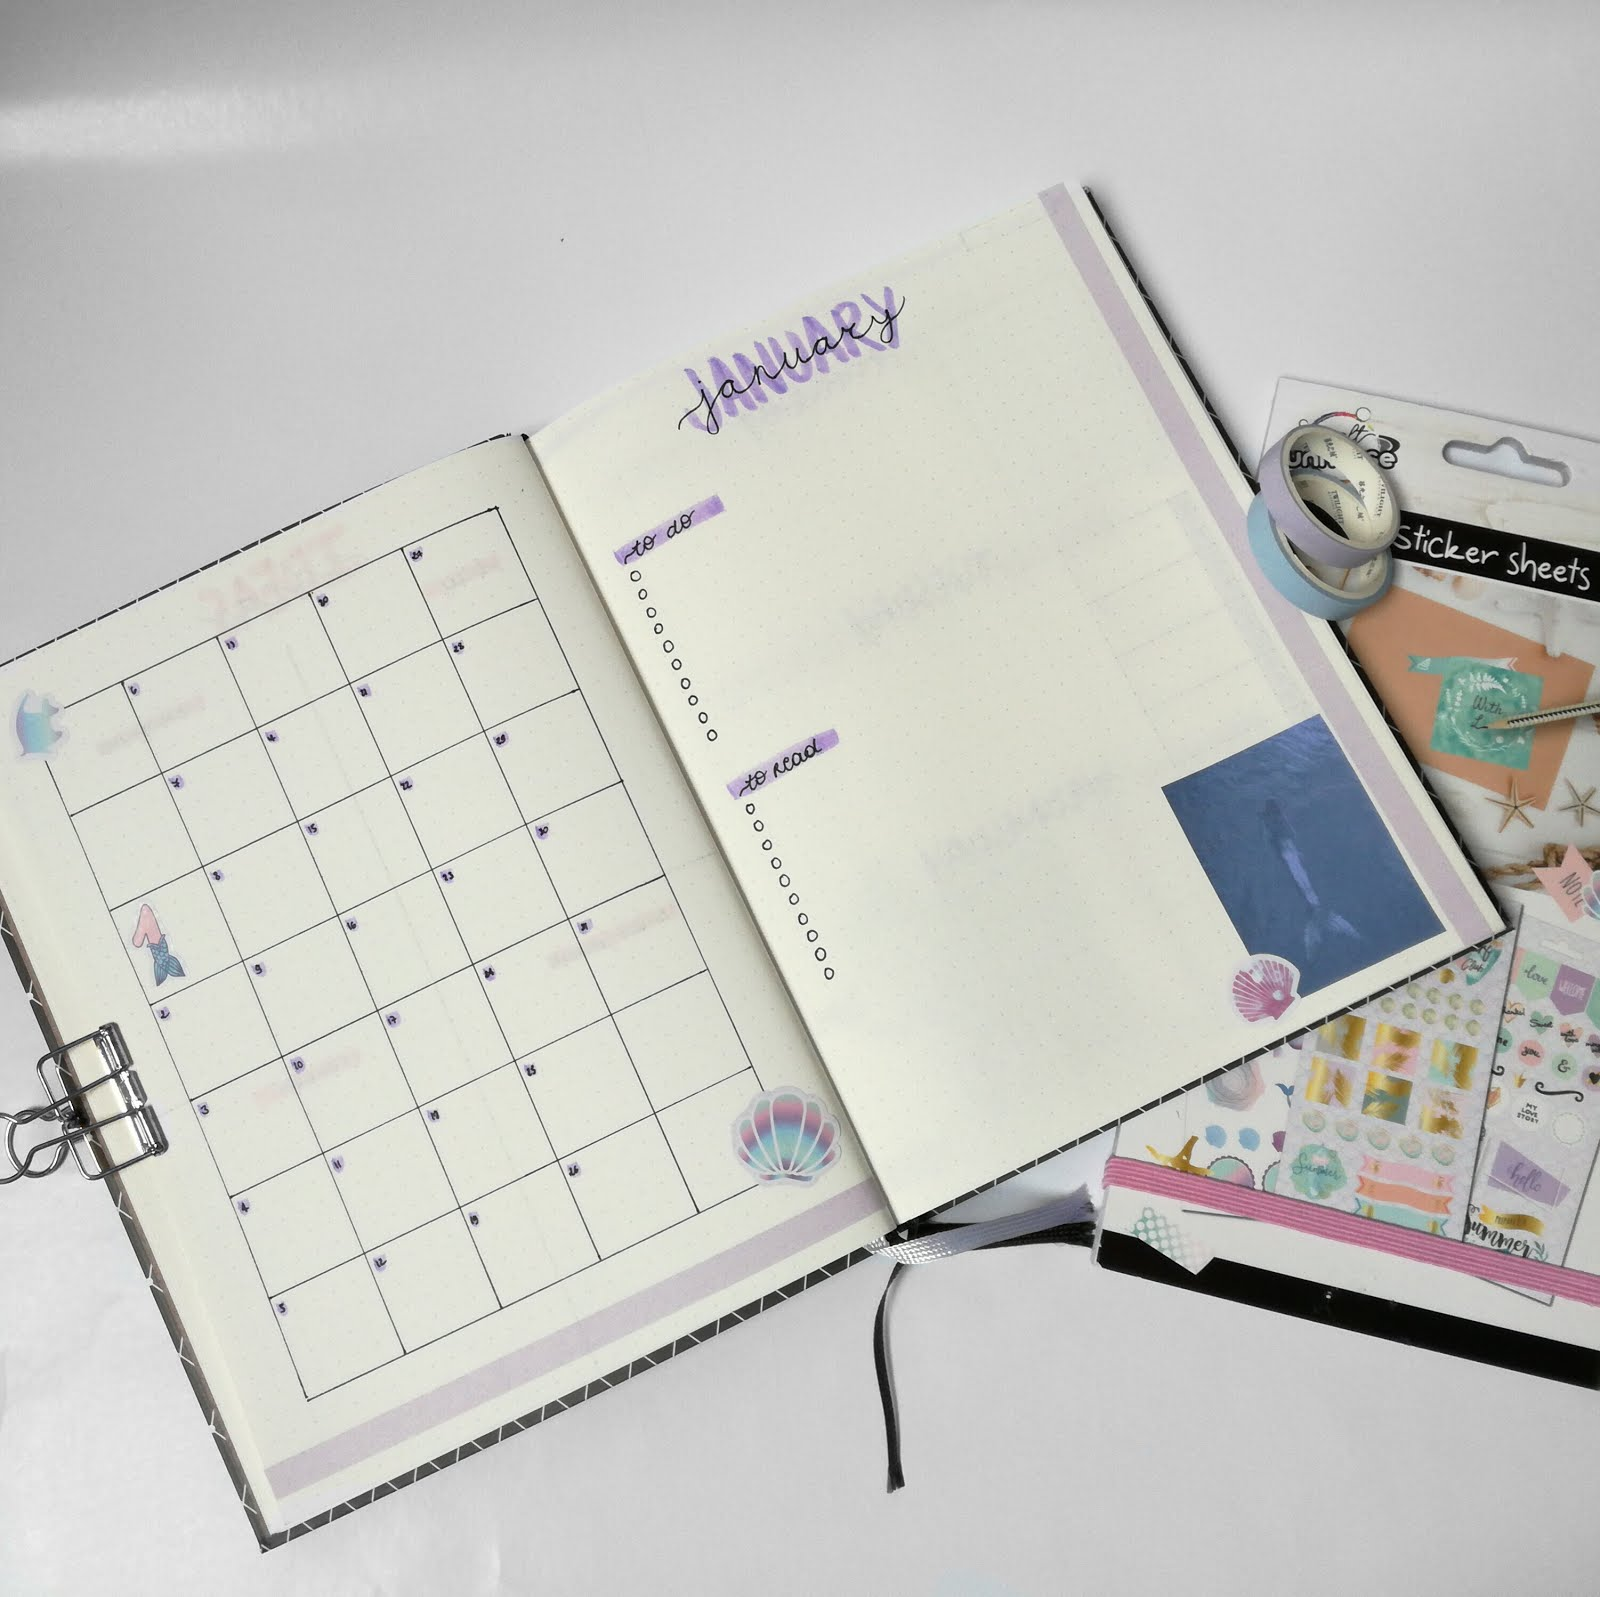 Latest Bullet Journal post!